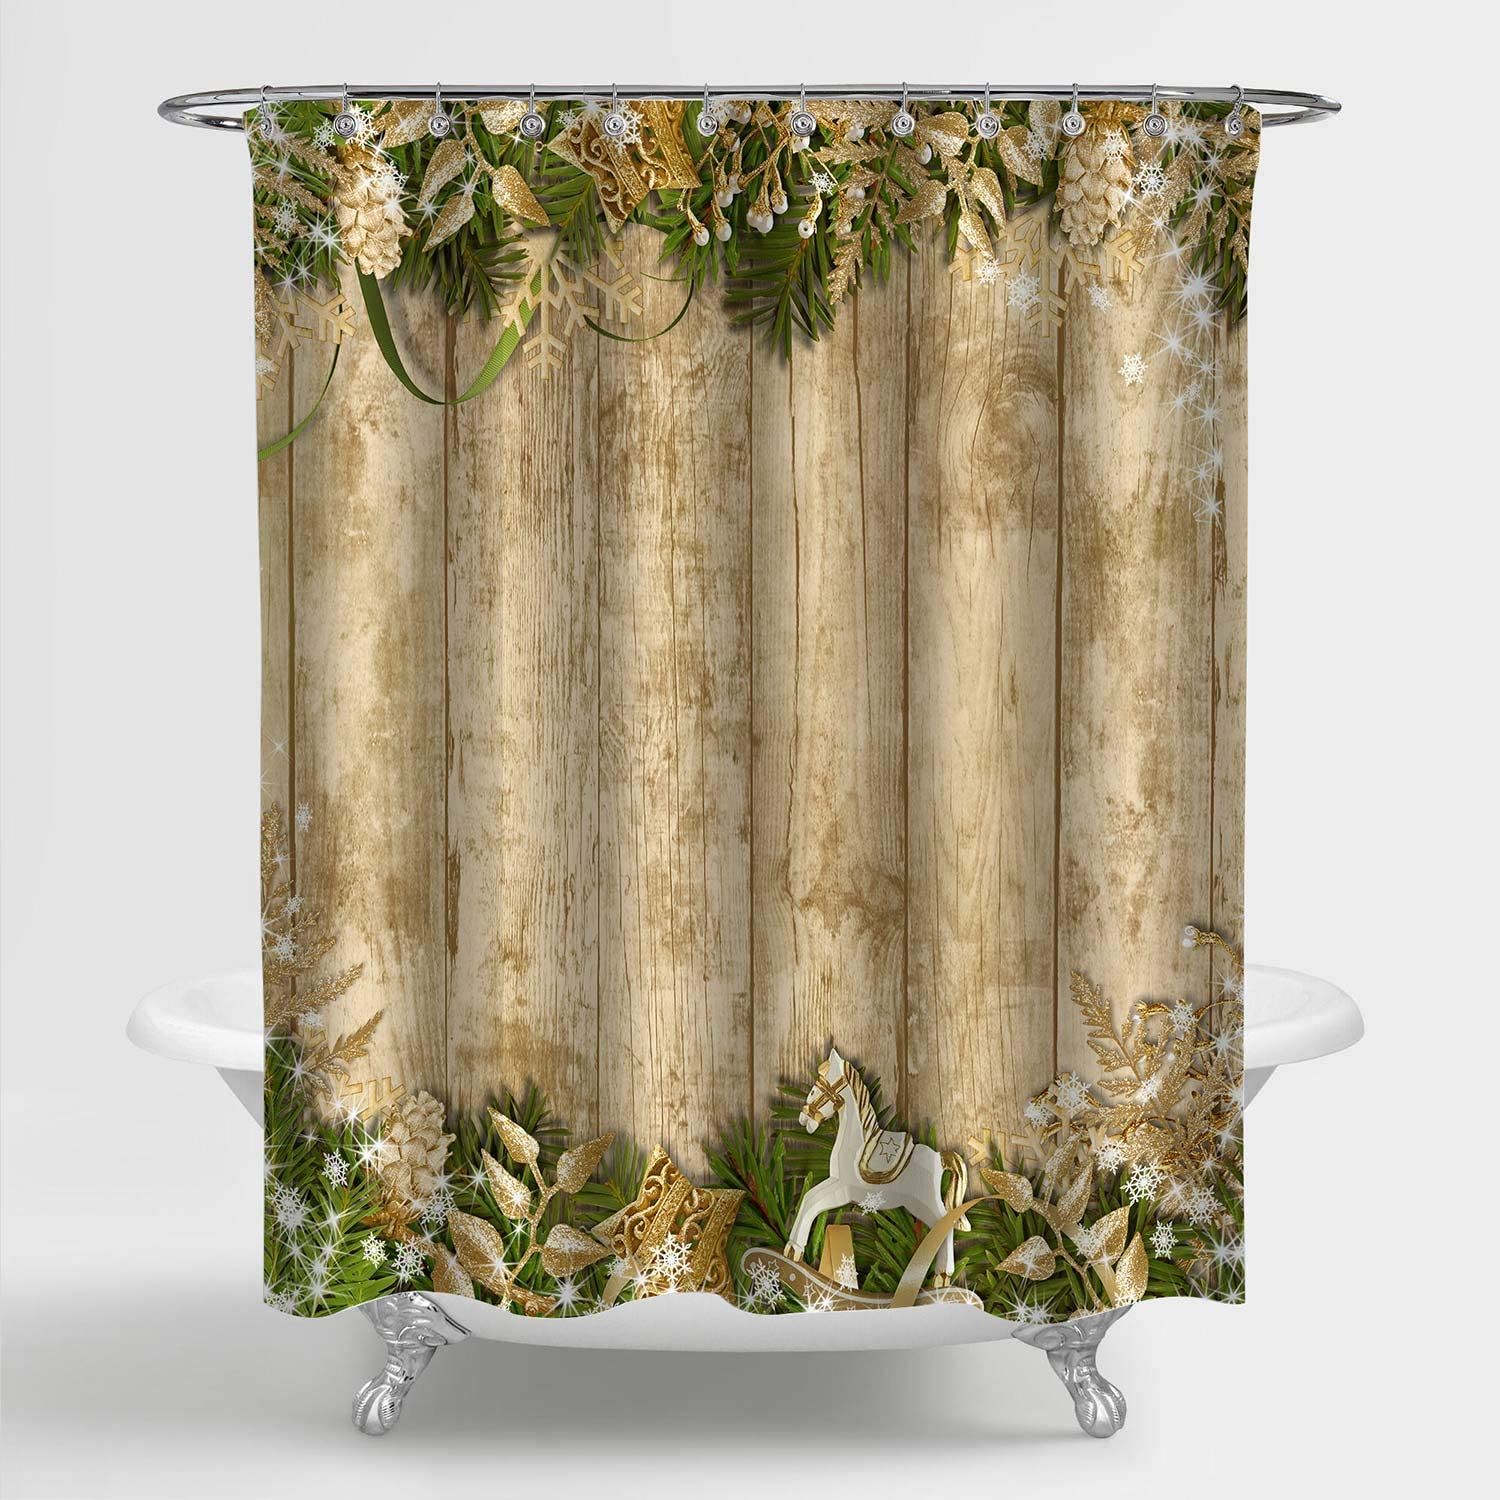 """MitoVilla Rustic Christmas Shower Curtain for Gold Home Decor, Magic Christmas Garland on a Antique Wooden Plank Bathroom Decorations, for Kids, Teens, Women and Girls, Gold, 72"""" x 72"""""""